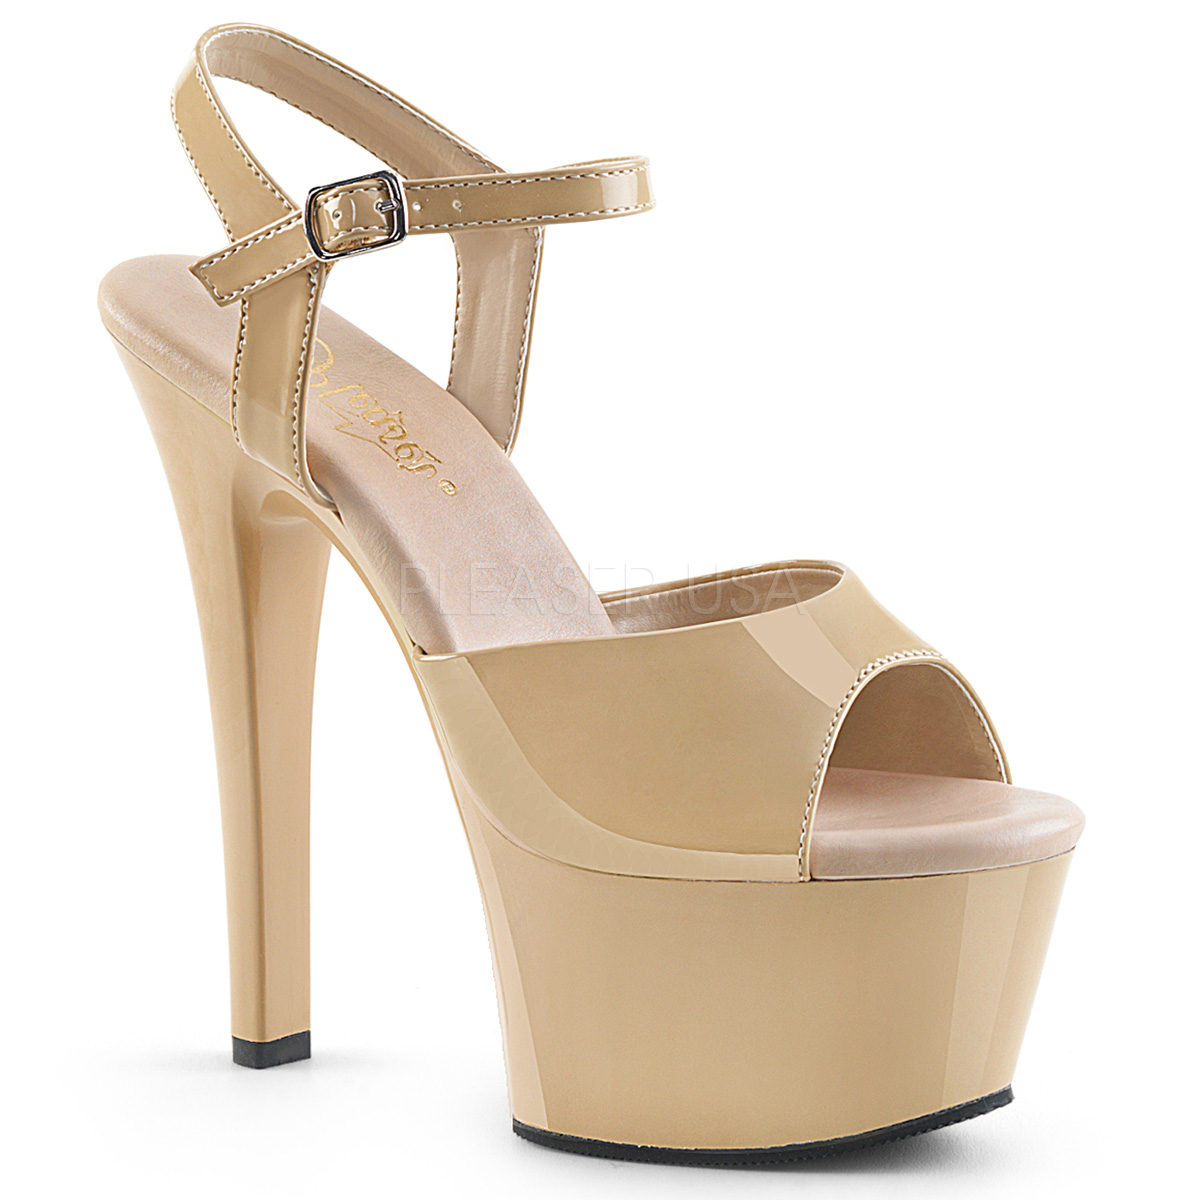 Pleaser ASPIRE-609 Economical, stylish, and eye-catching shoes